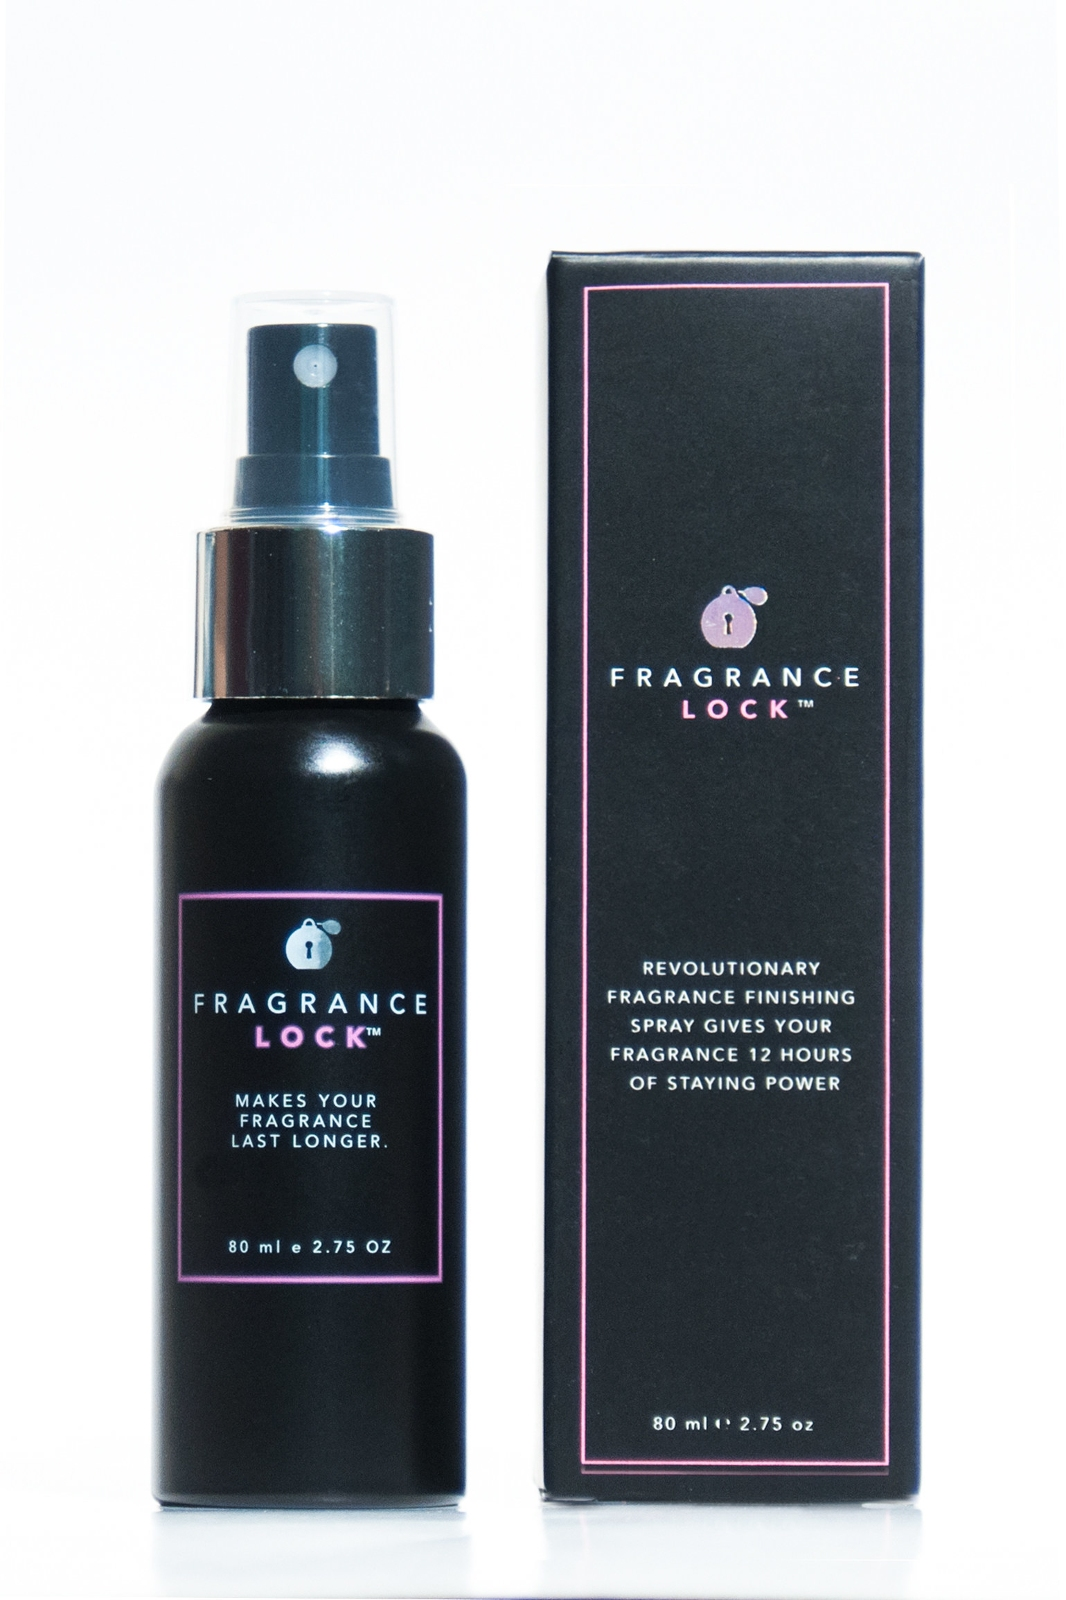 Have you heard of Fragrance Lock?